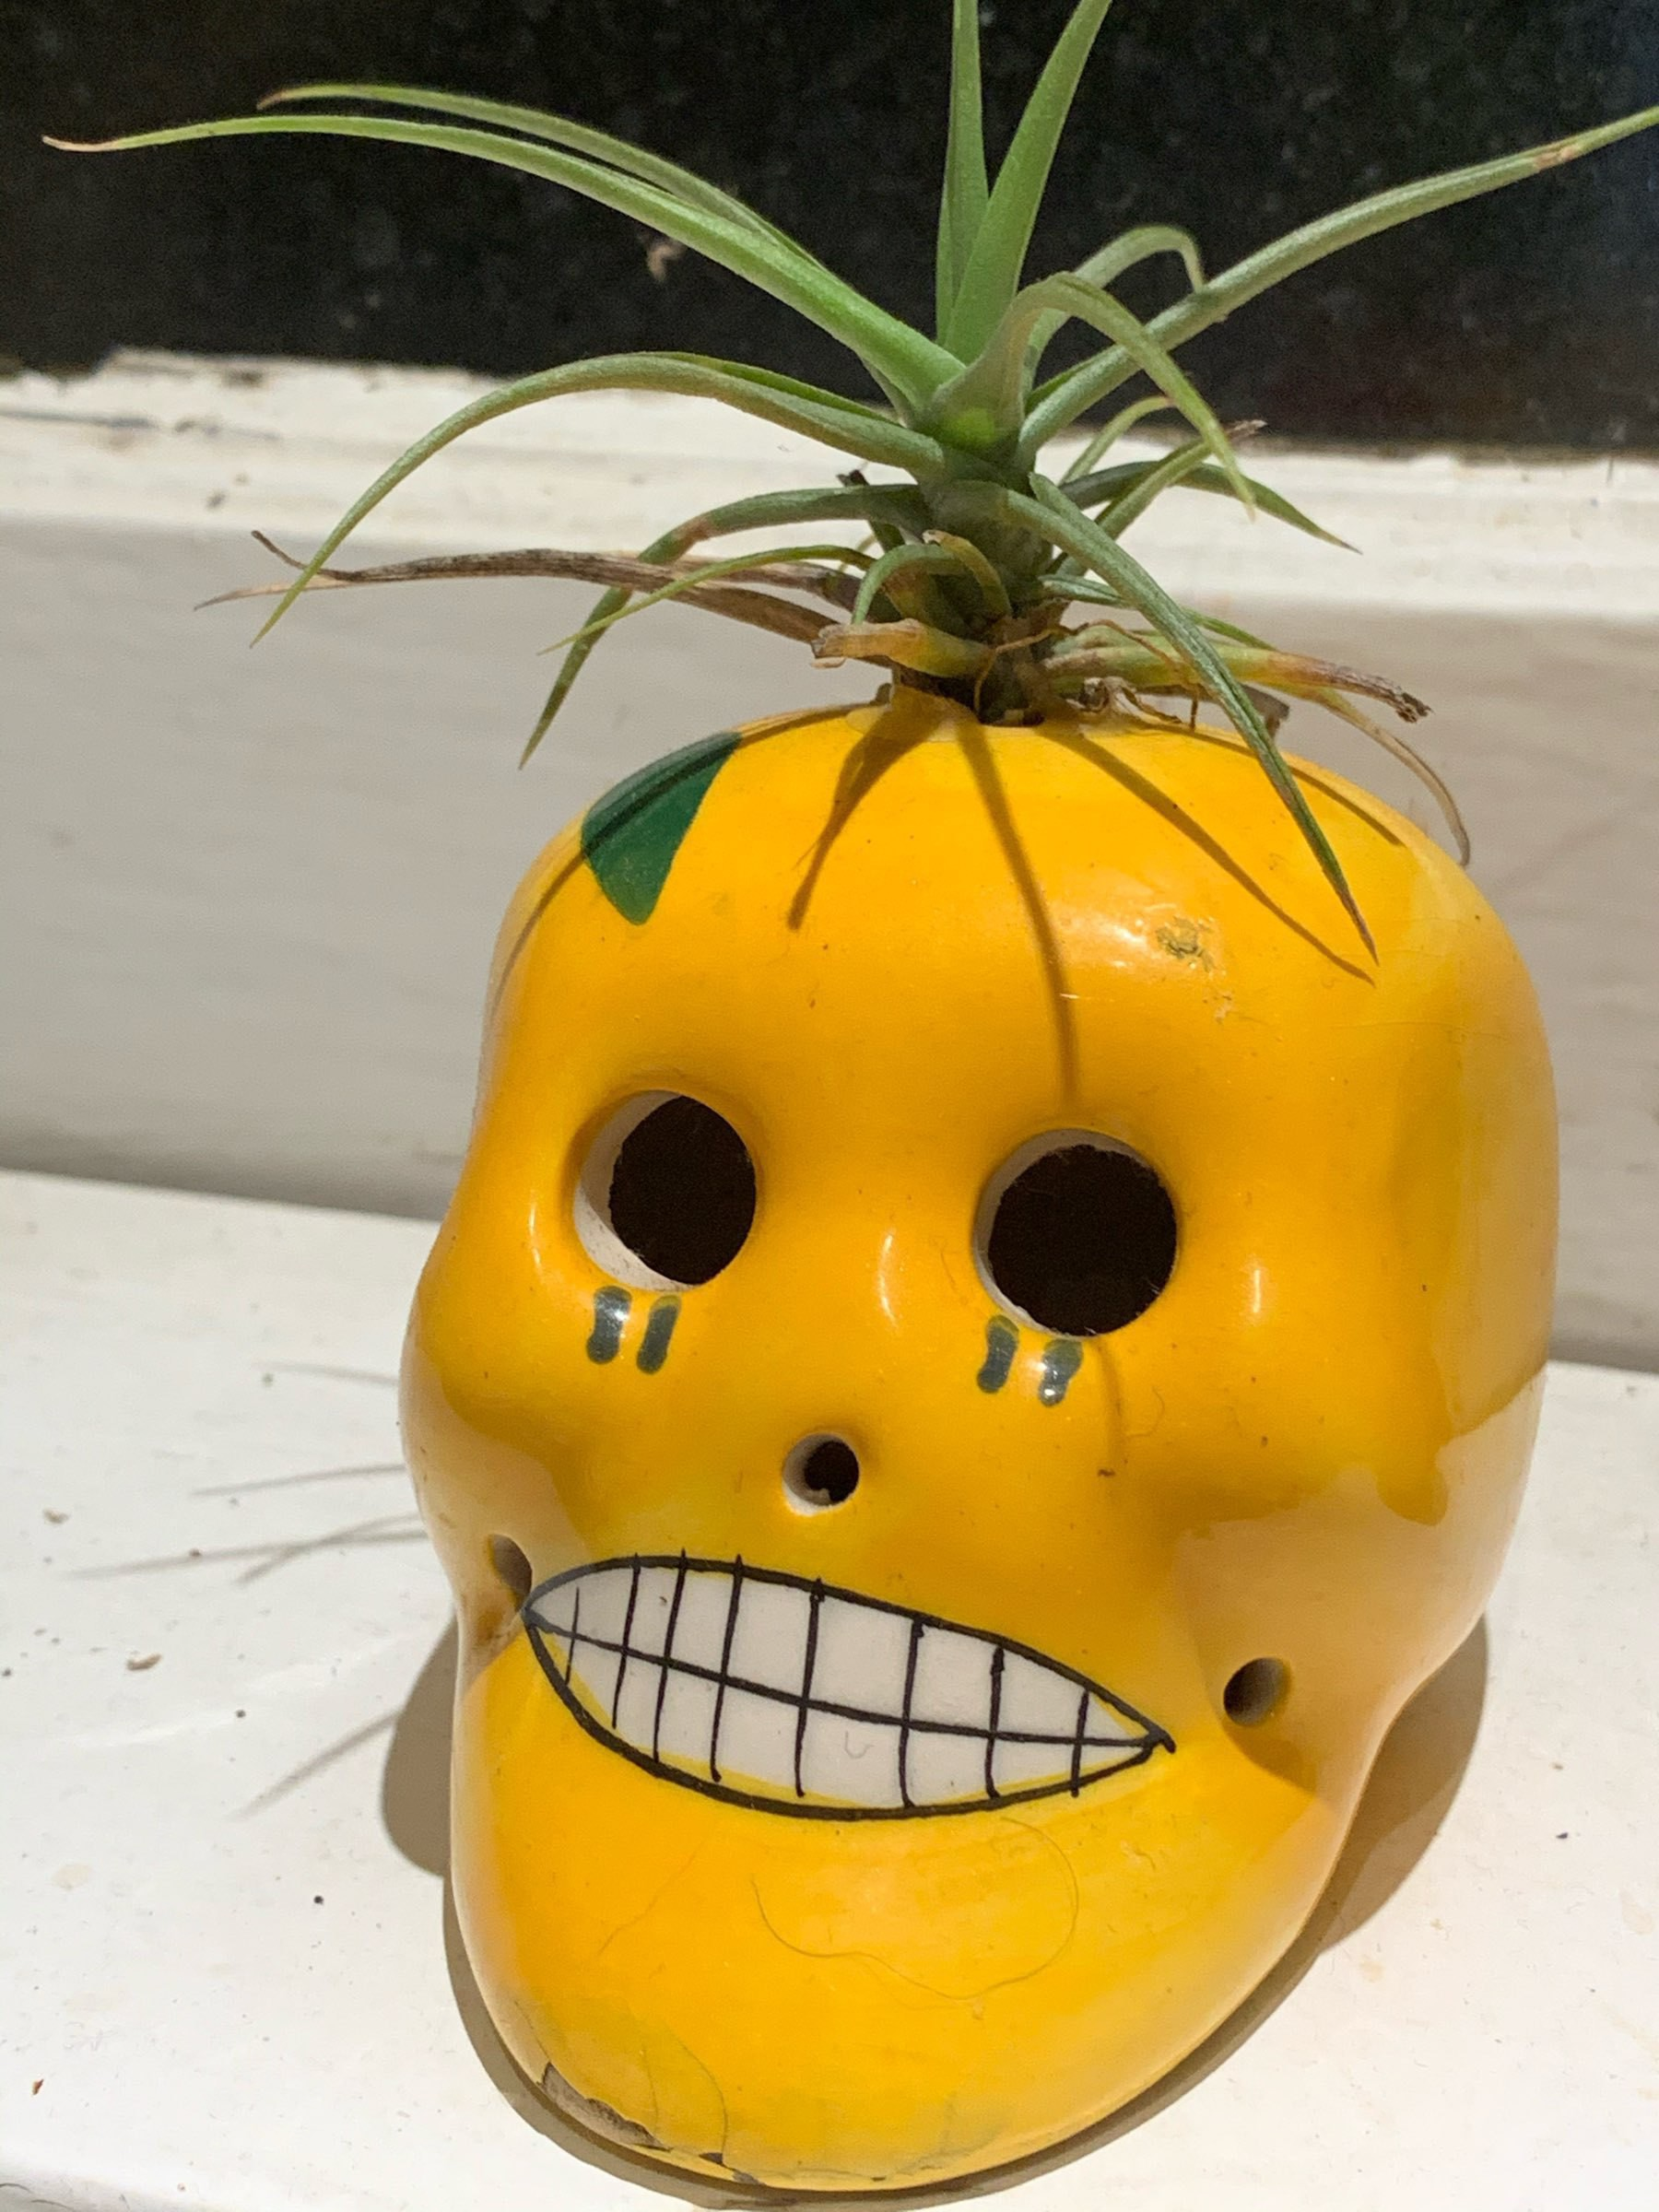 yellow ceramic skull with air plant growing out of the crown on the skull